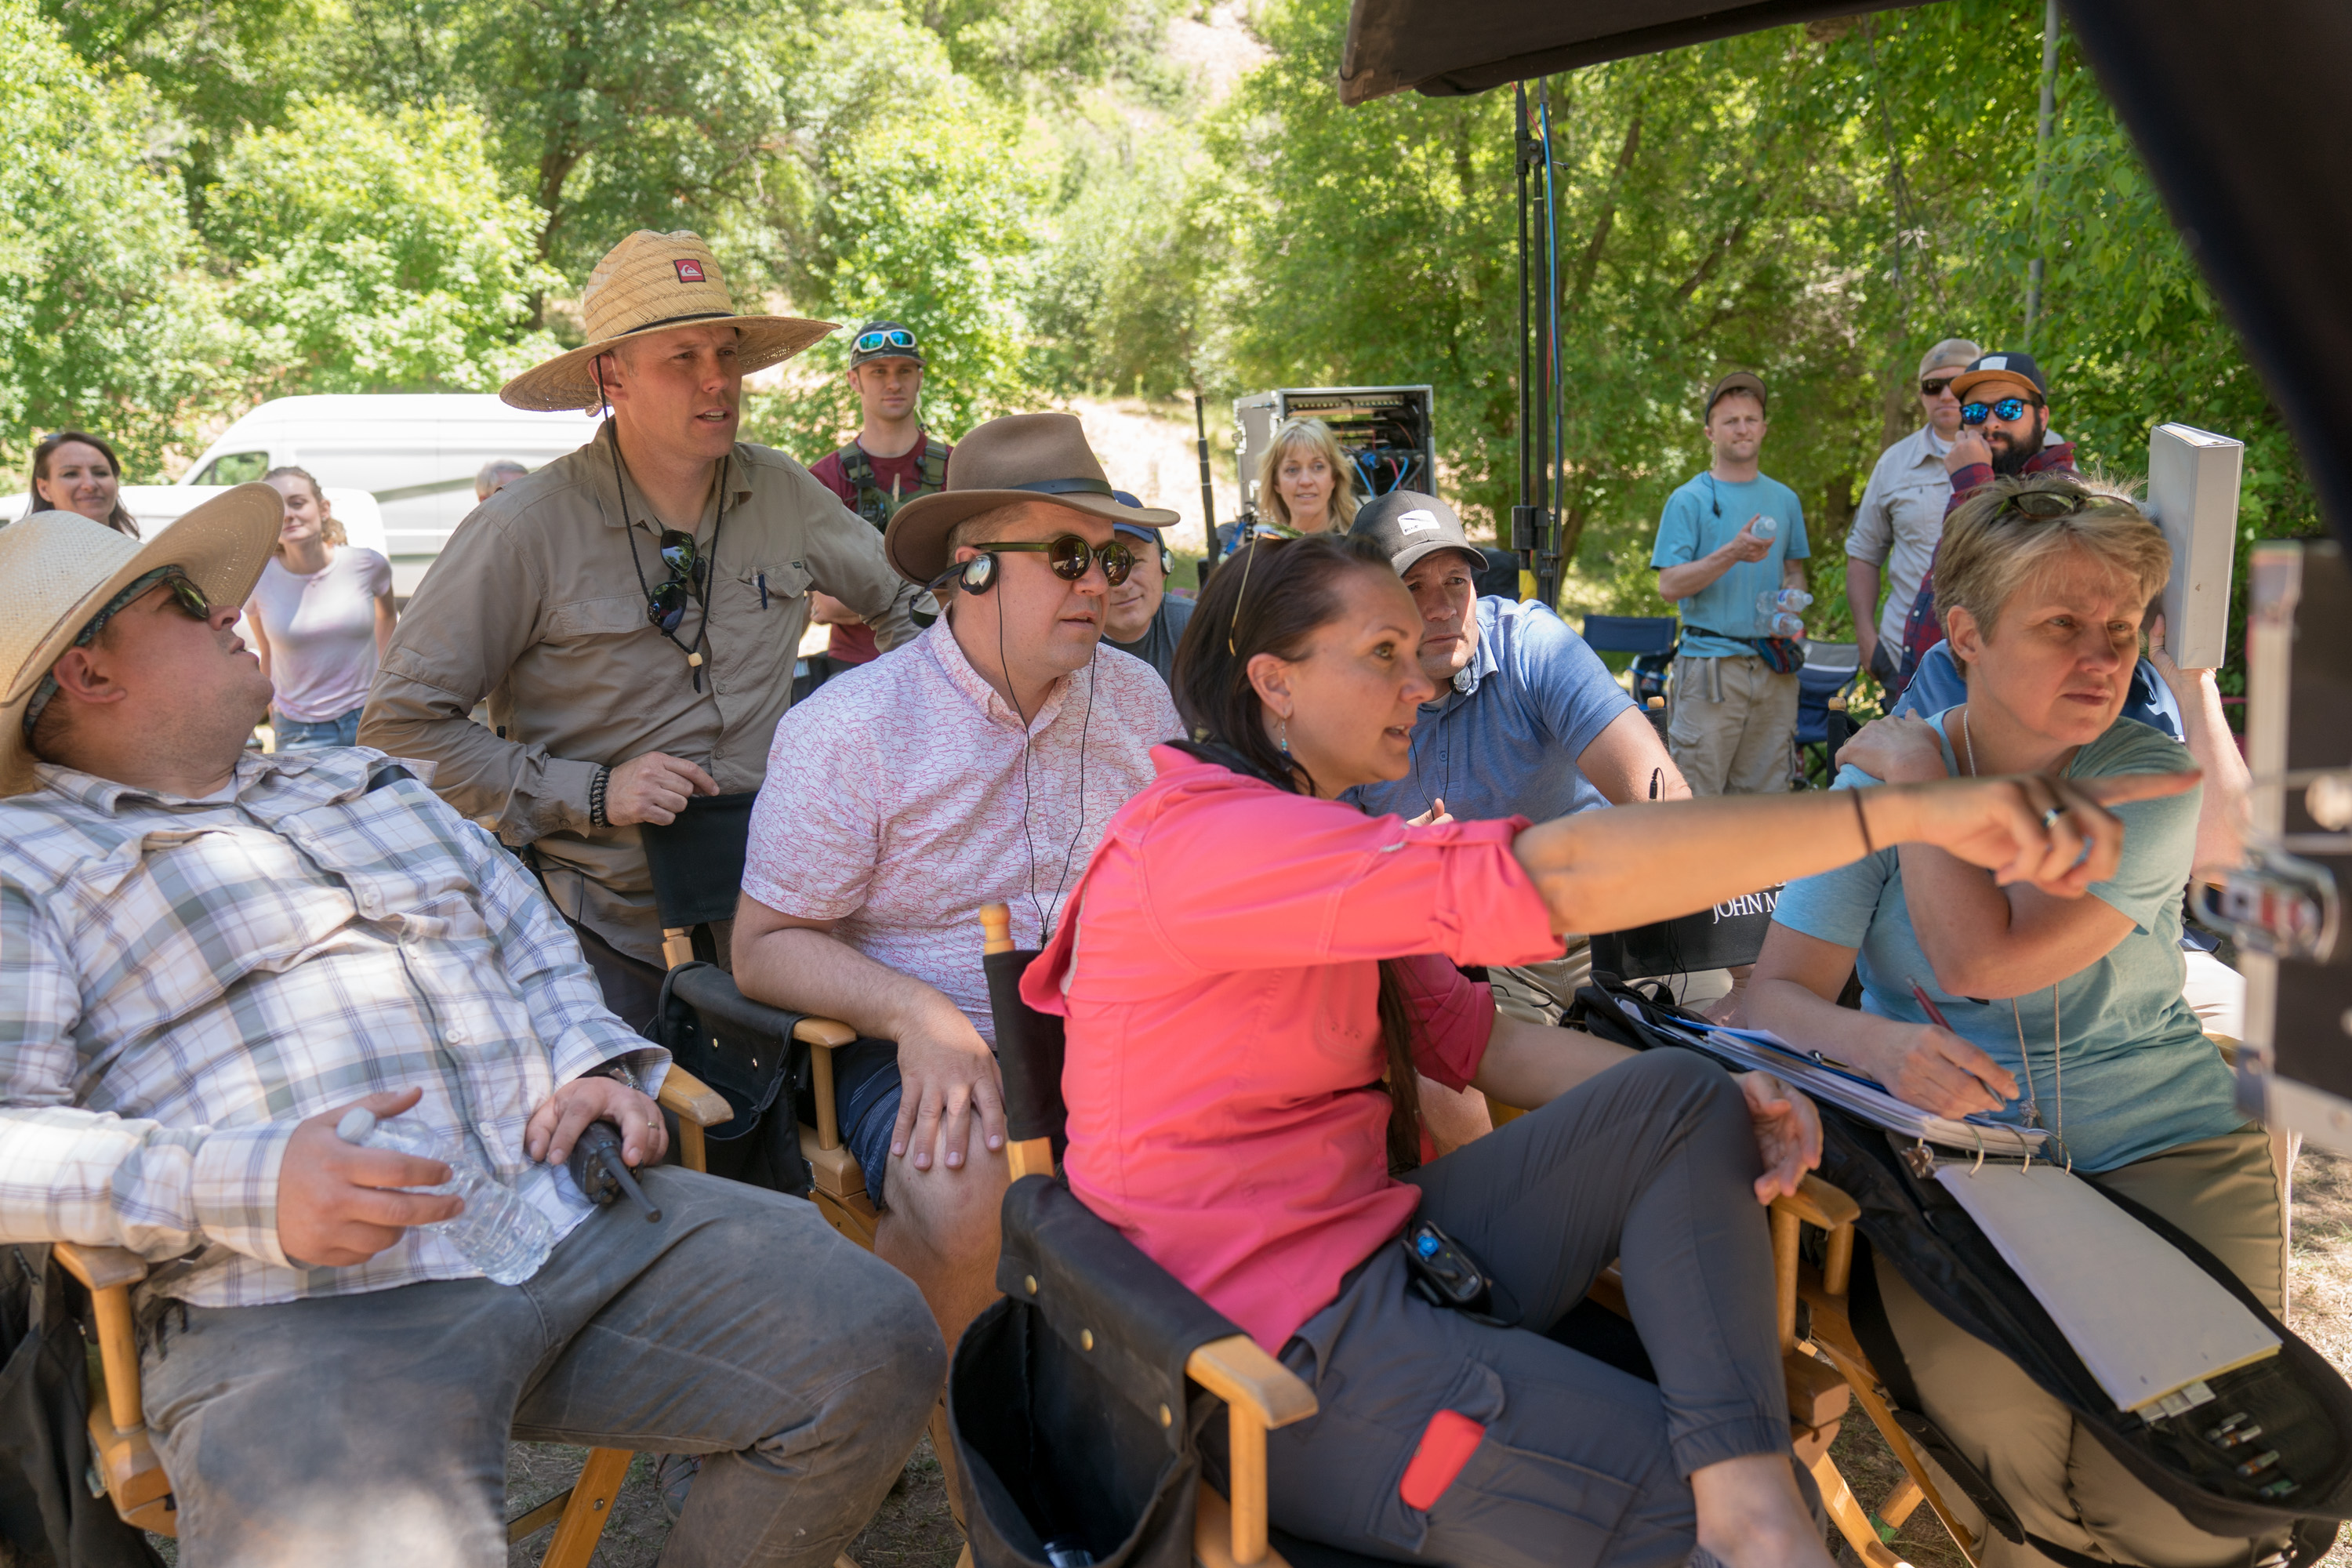 A behind-the-scenes look at the crew during the shooting of a scene taken from the early pages of the Book of Mormon during shooting of the second season of the Book of Mormon Video Library project on set near Springville, Utah, June 2018.